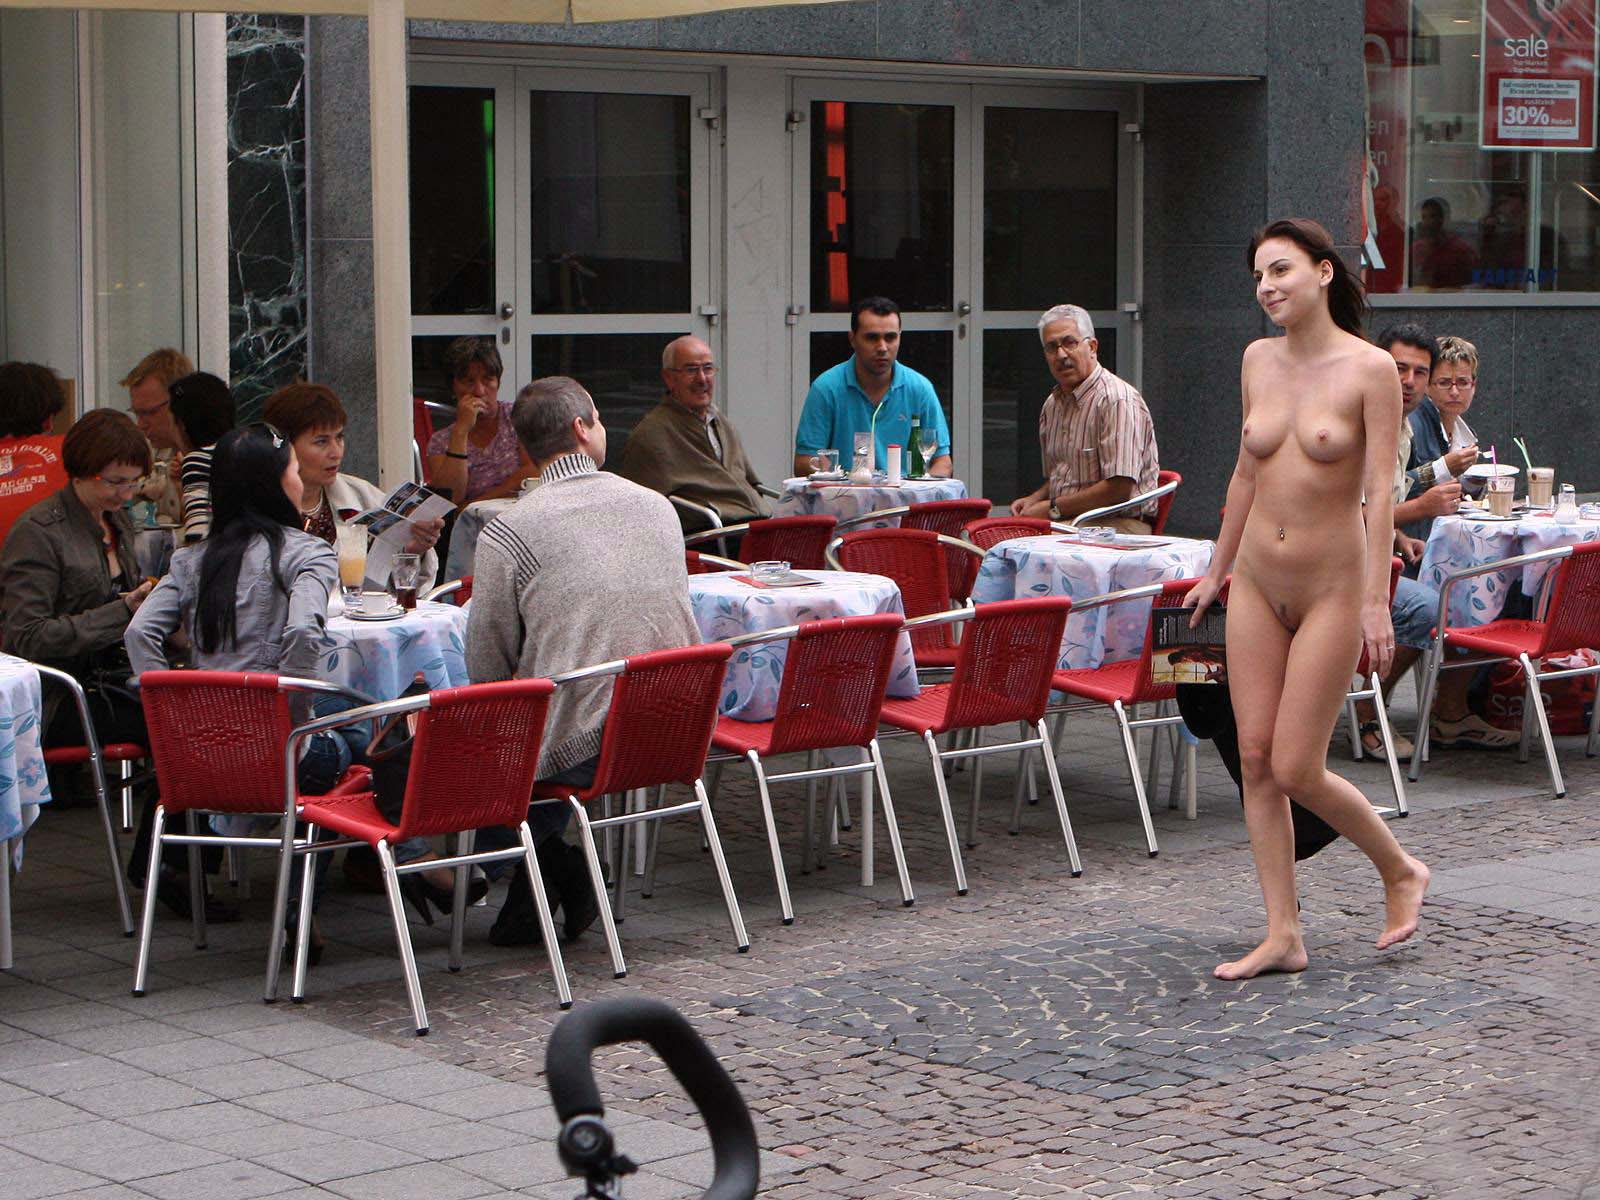 Teen walking naked near the cafe bar draw attention